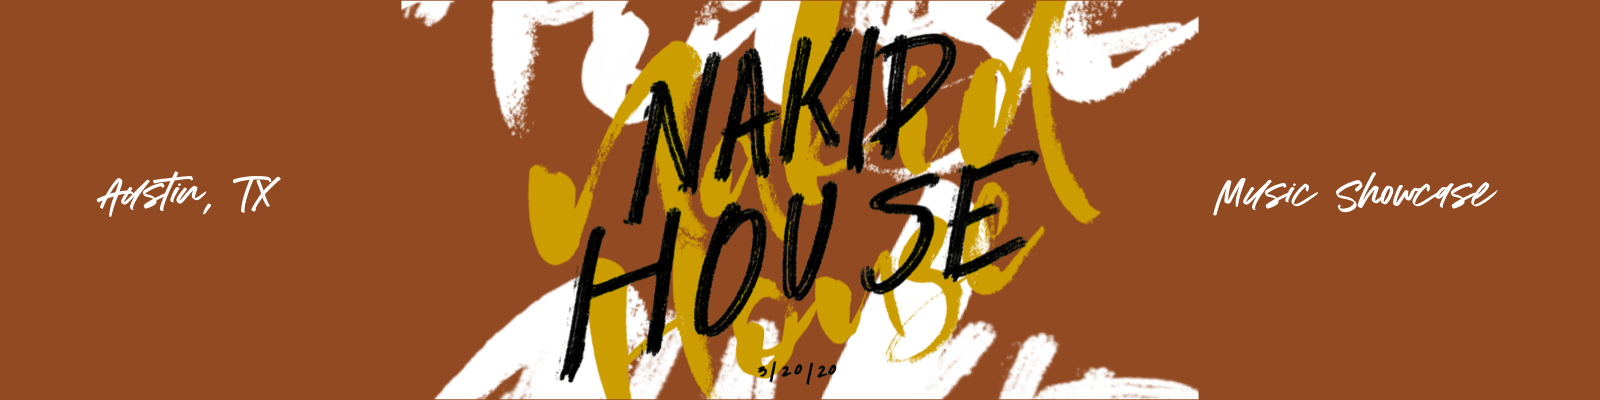 NAKID HOUSE 2020 ad banner